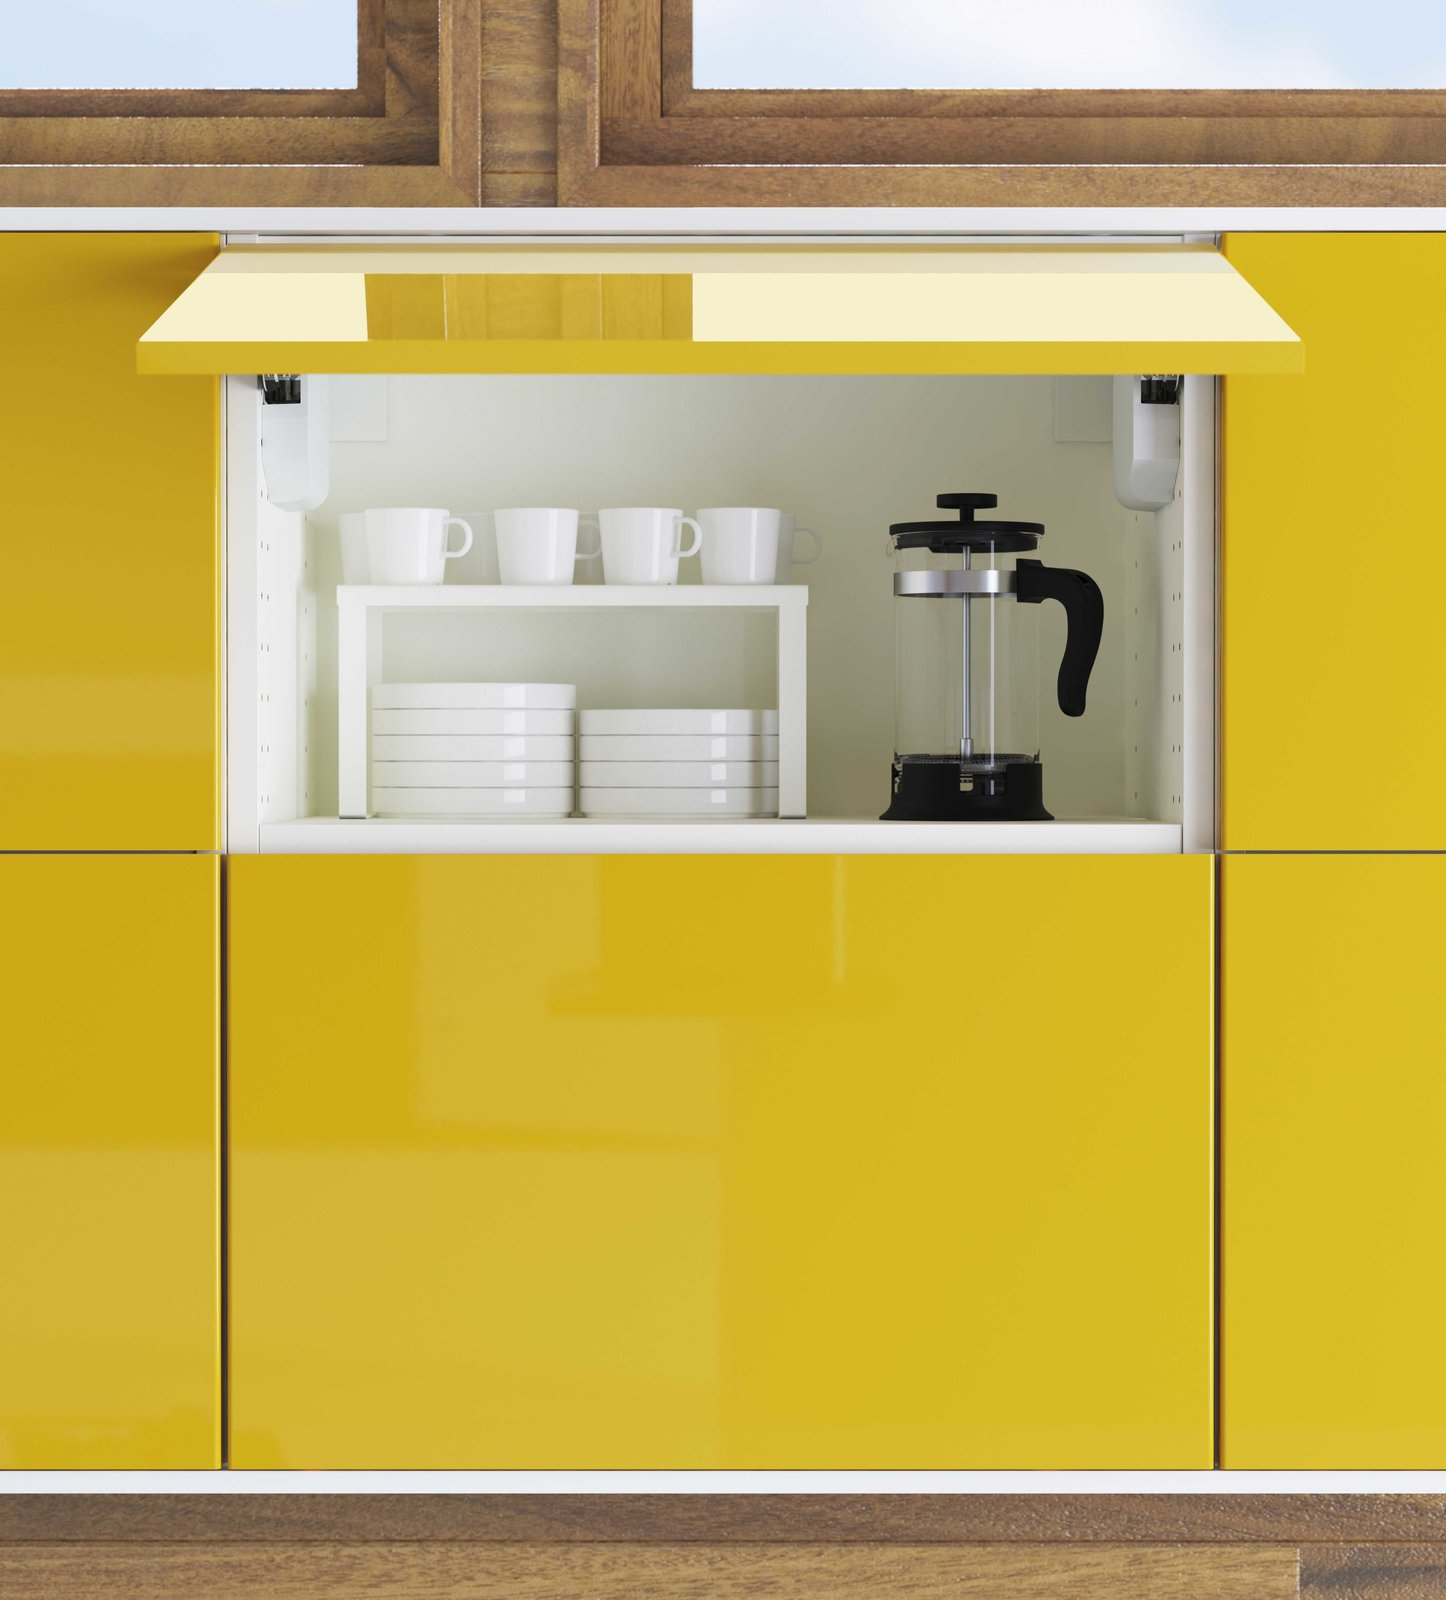 Kitchen and Colorful Cabinet Overhead cabinets now can be easily swung open for ease of access. The kitchens are priced at IKEA's usual retails. A 10 by 10 foot kitchen fitted with Sektion cabinets will range from around $1,300 to $2,200, excluding appliances.  Photos from You Can Now Build Your Entire Kitchen with IKEA (Appliances Too!)